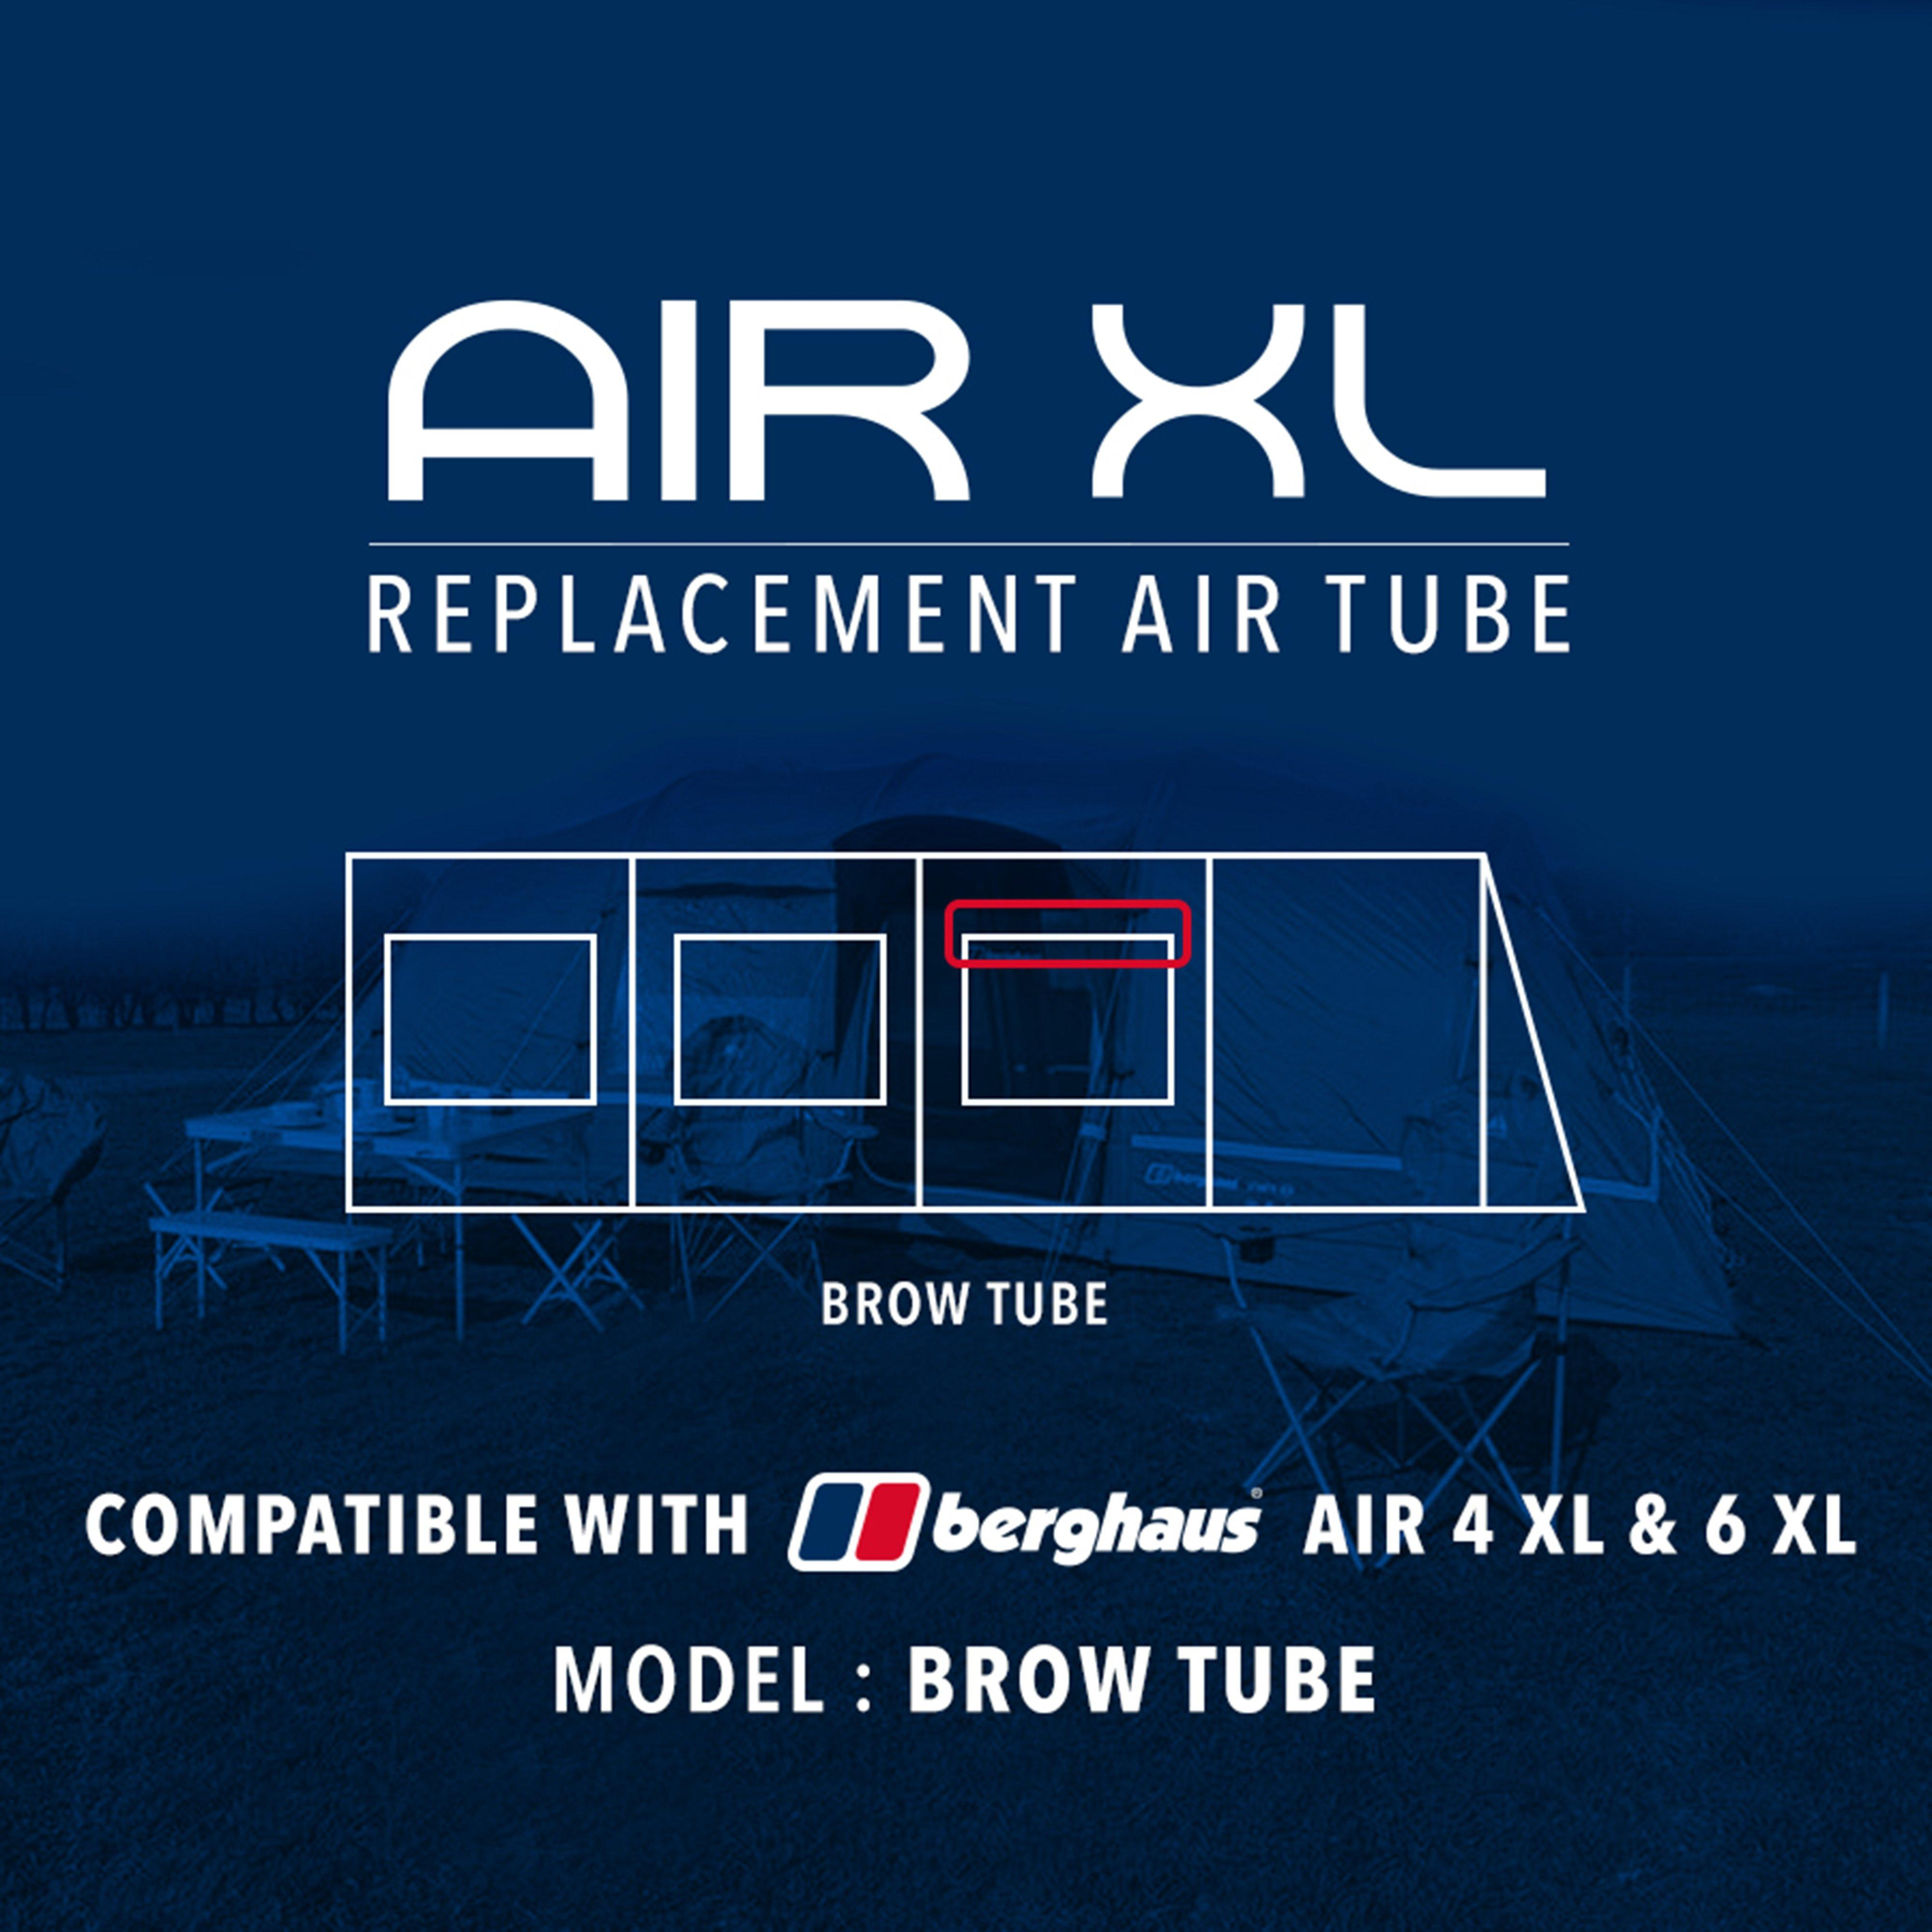 Berghaus Air 6XL Replacement Air Tube